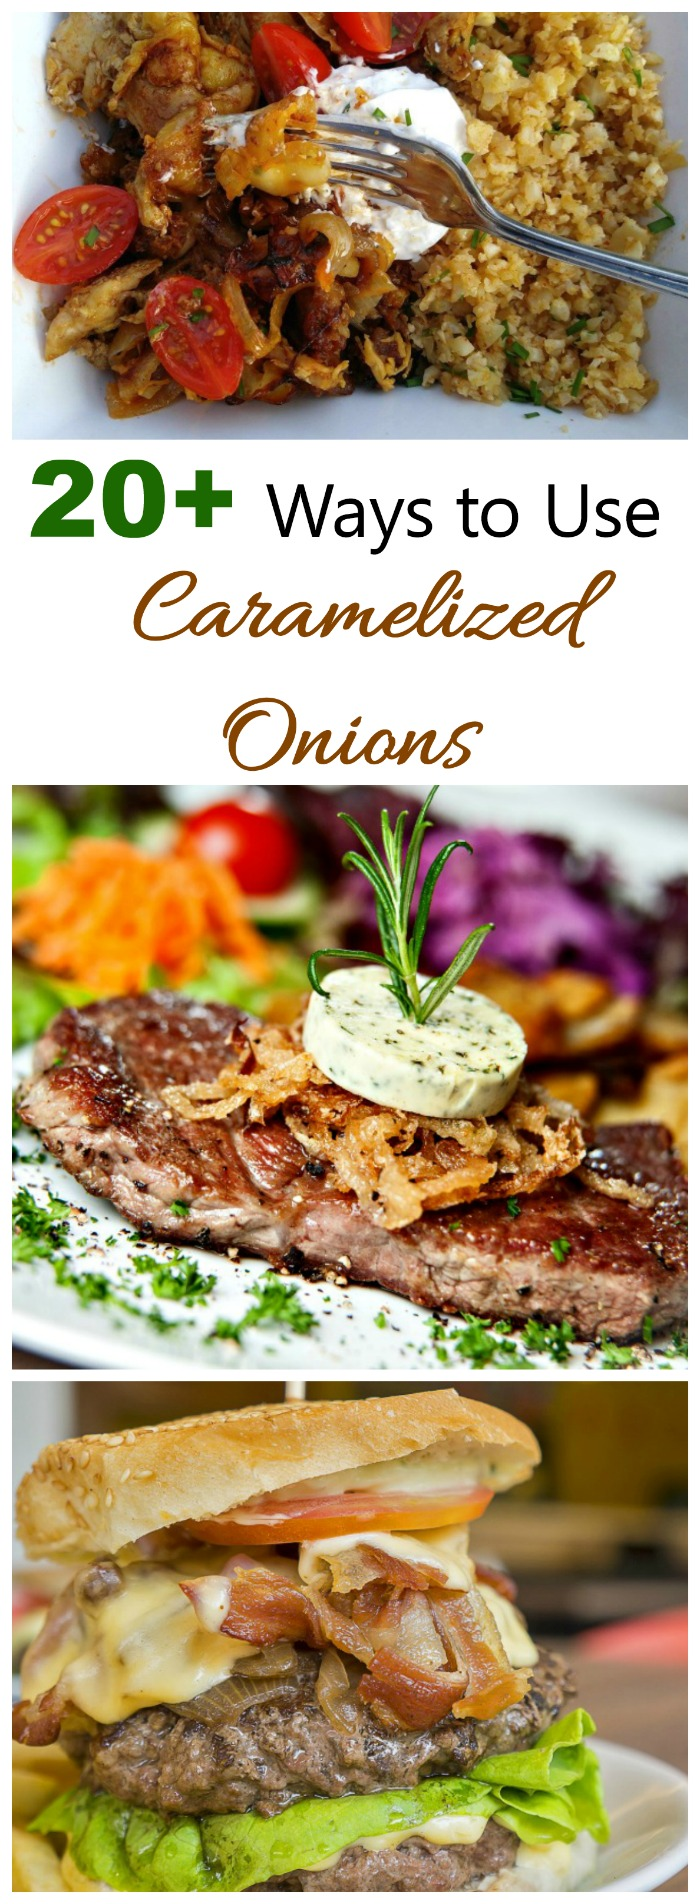 Tips using caramelized onions as toppings, or fillings in your favorite recipes